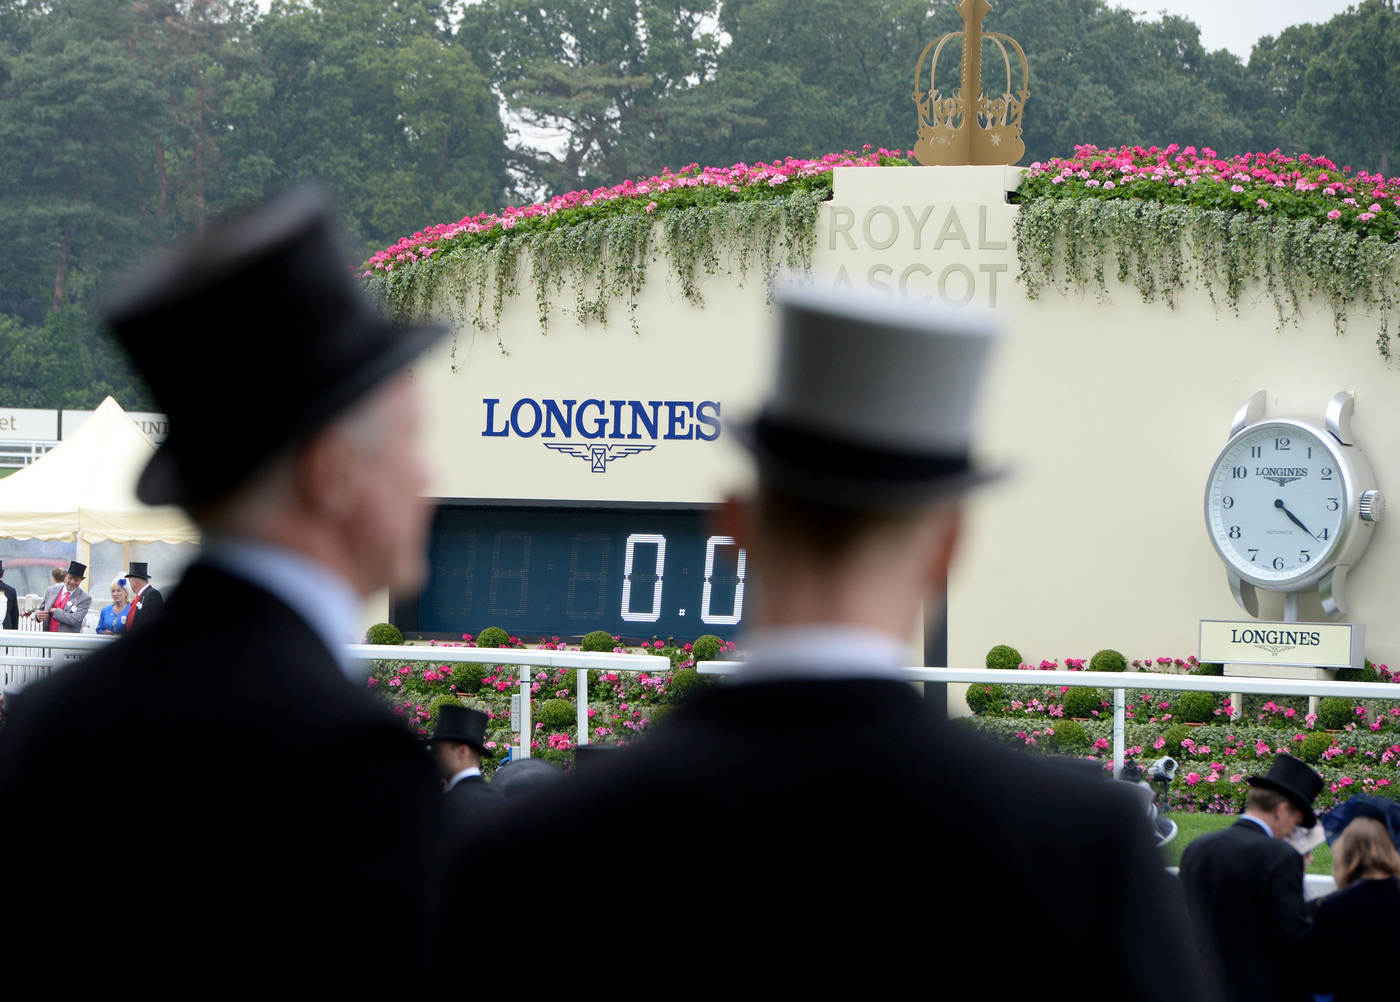 Longines Flat Racing Event: Longines celebrates elegance at Royal Ascot with Chi Ling Lin 7